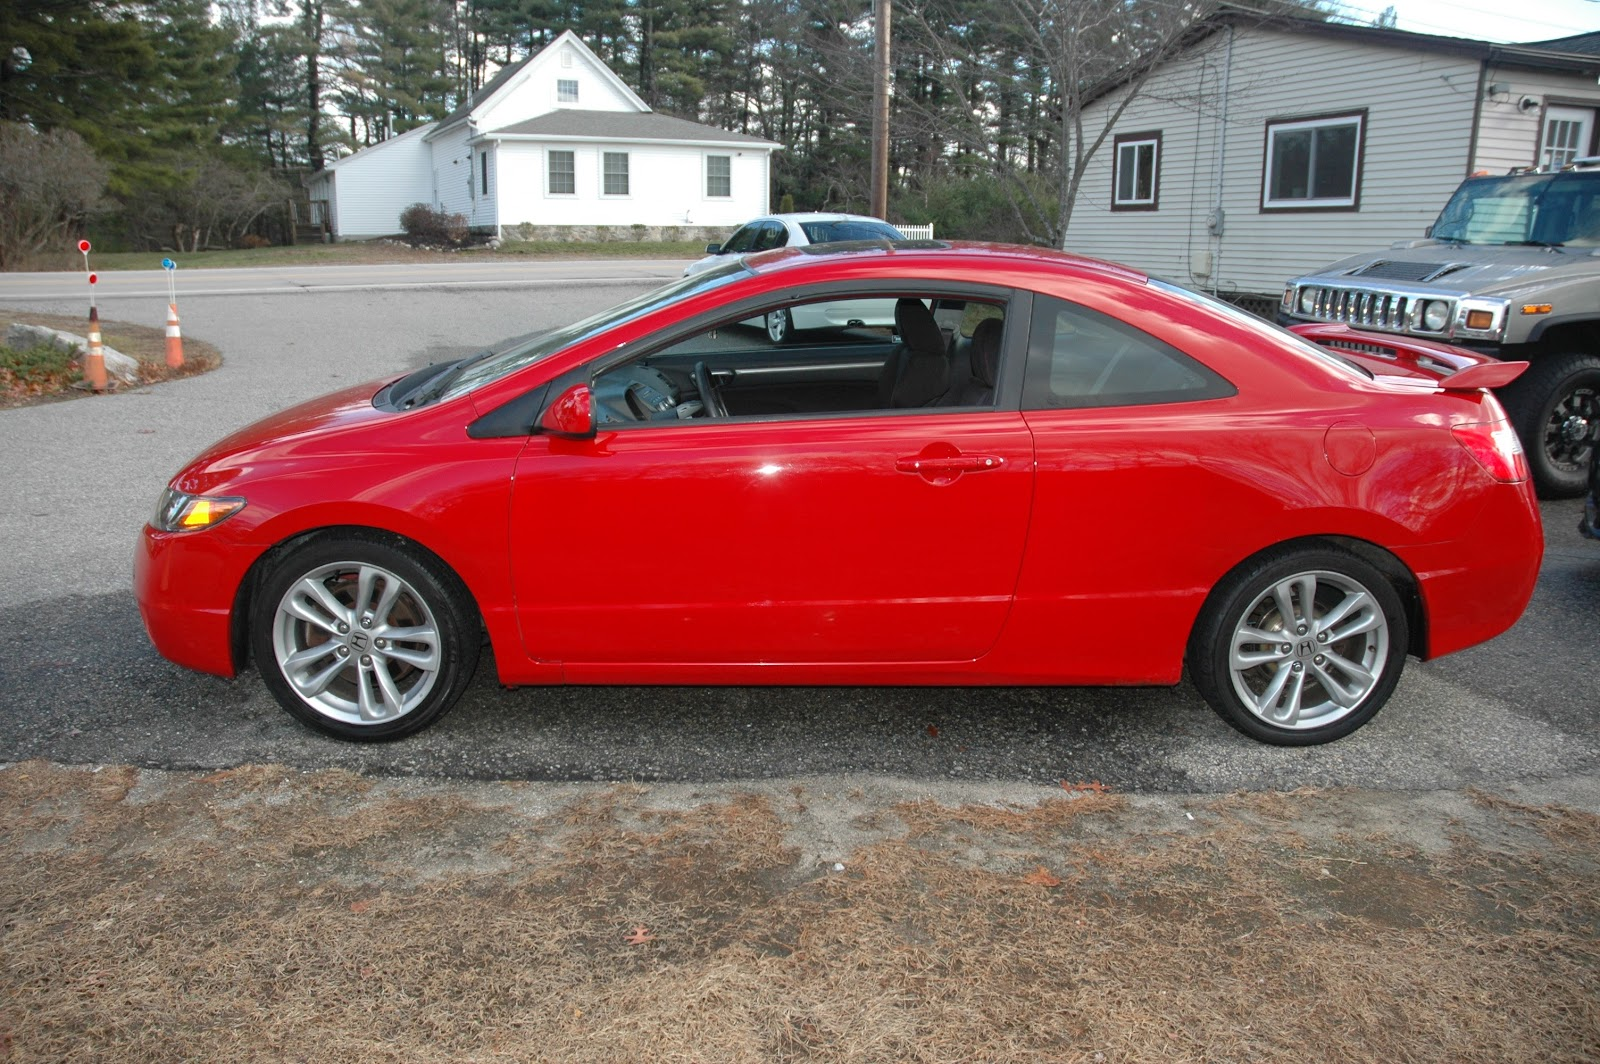 2006 honda civic si coupe red. Black Bedroom Furniture Sets. Home Design Ideas